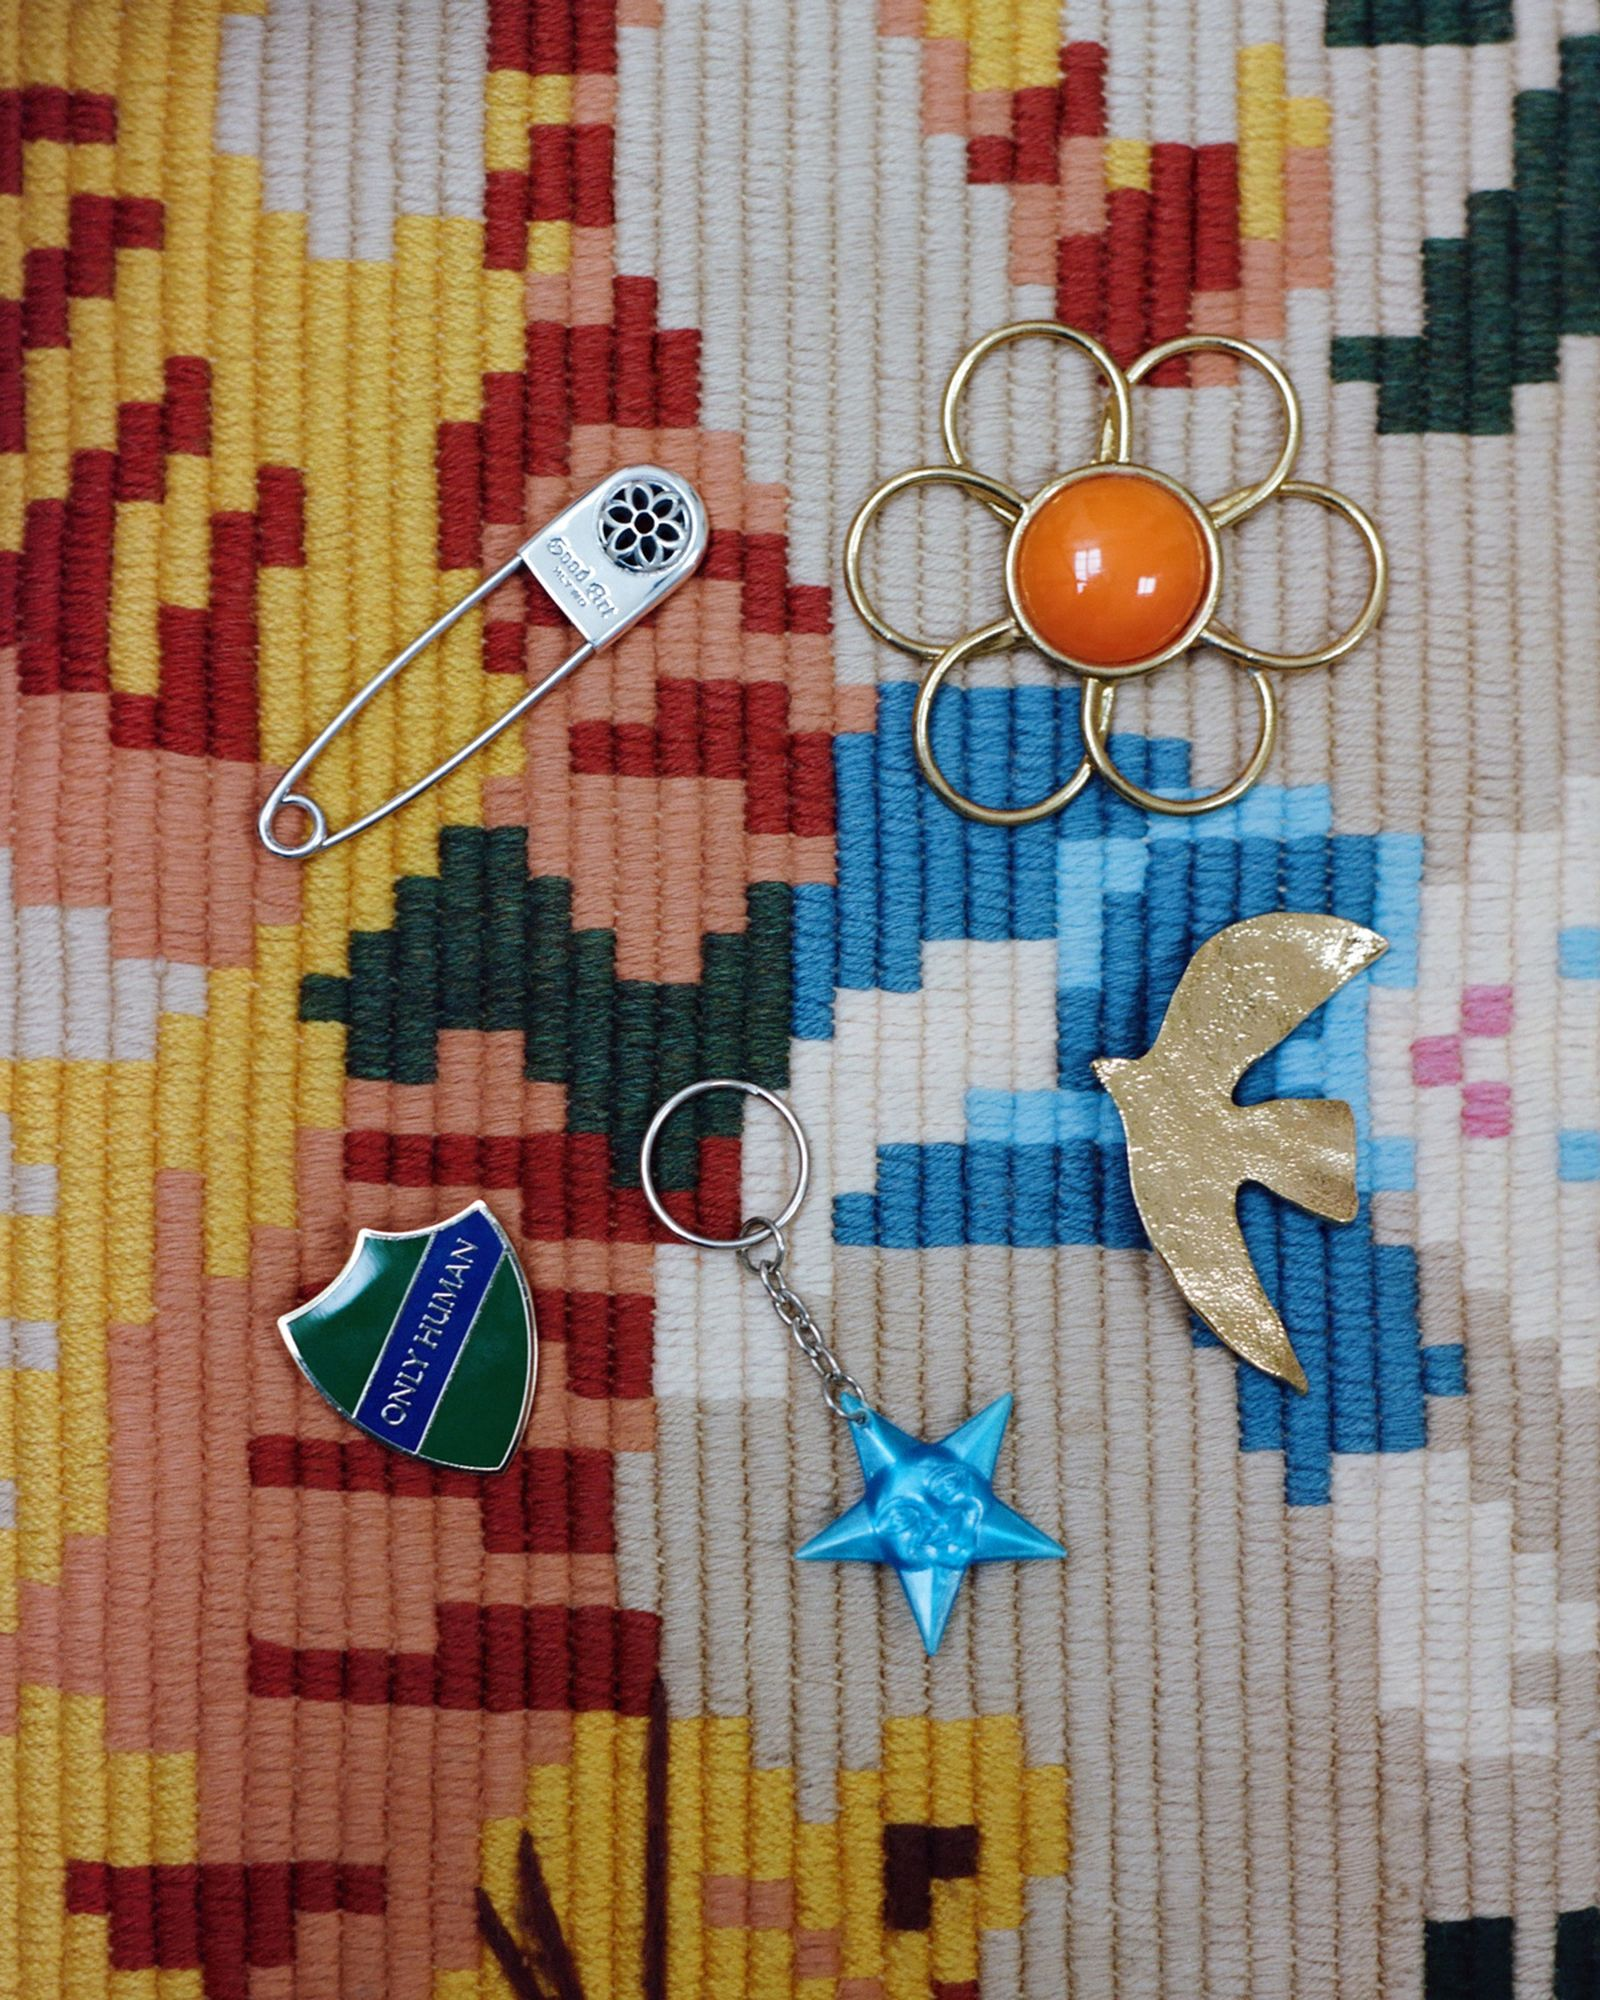 Pin GOOD ART HLYWD, Flower STYLIST'S OWN, Bird brooch CECILE ET JEANNE, Star keyring EBAY, Only human school badge THAMES MMXX